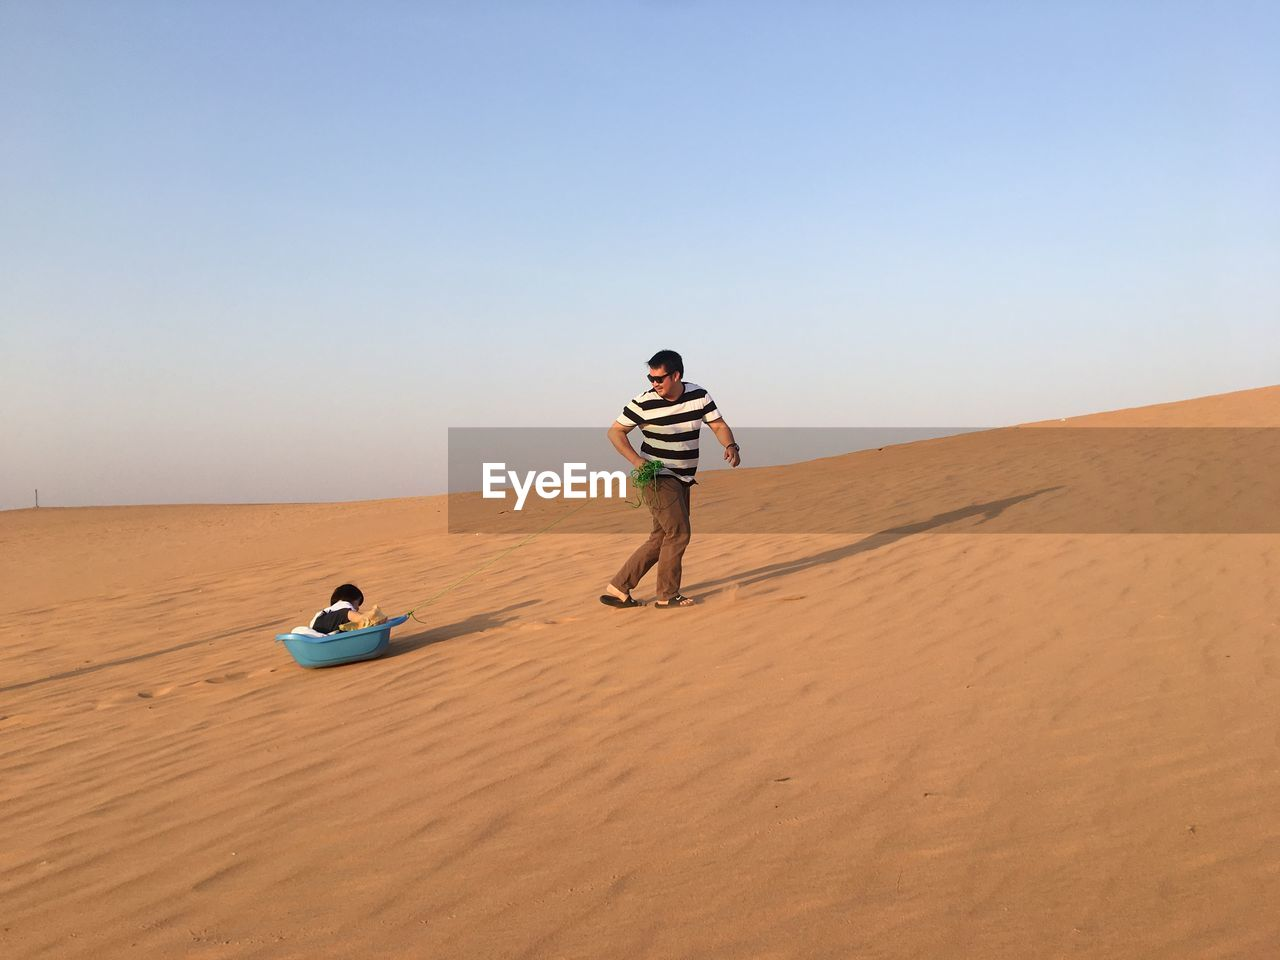 land, sky, sand, desert, real people, lifestyles, sand dune, scenics - nature, leisure activity, climate, arid climate, beauty in nature, full length, landscape, copy space, nature, clear sky, people, casual clothing, day